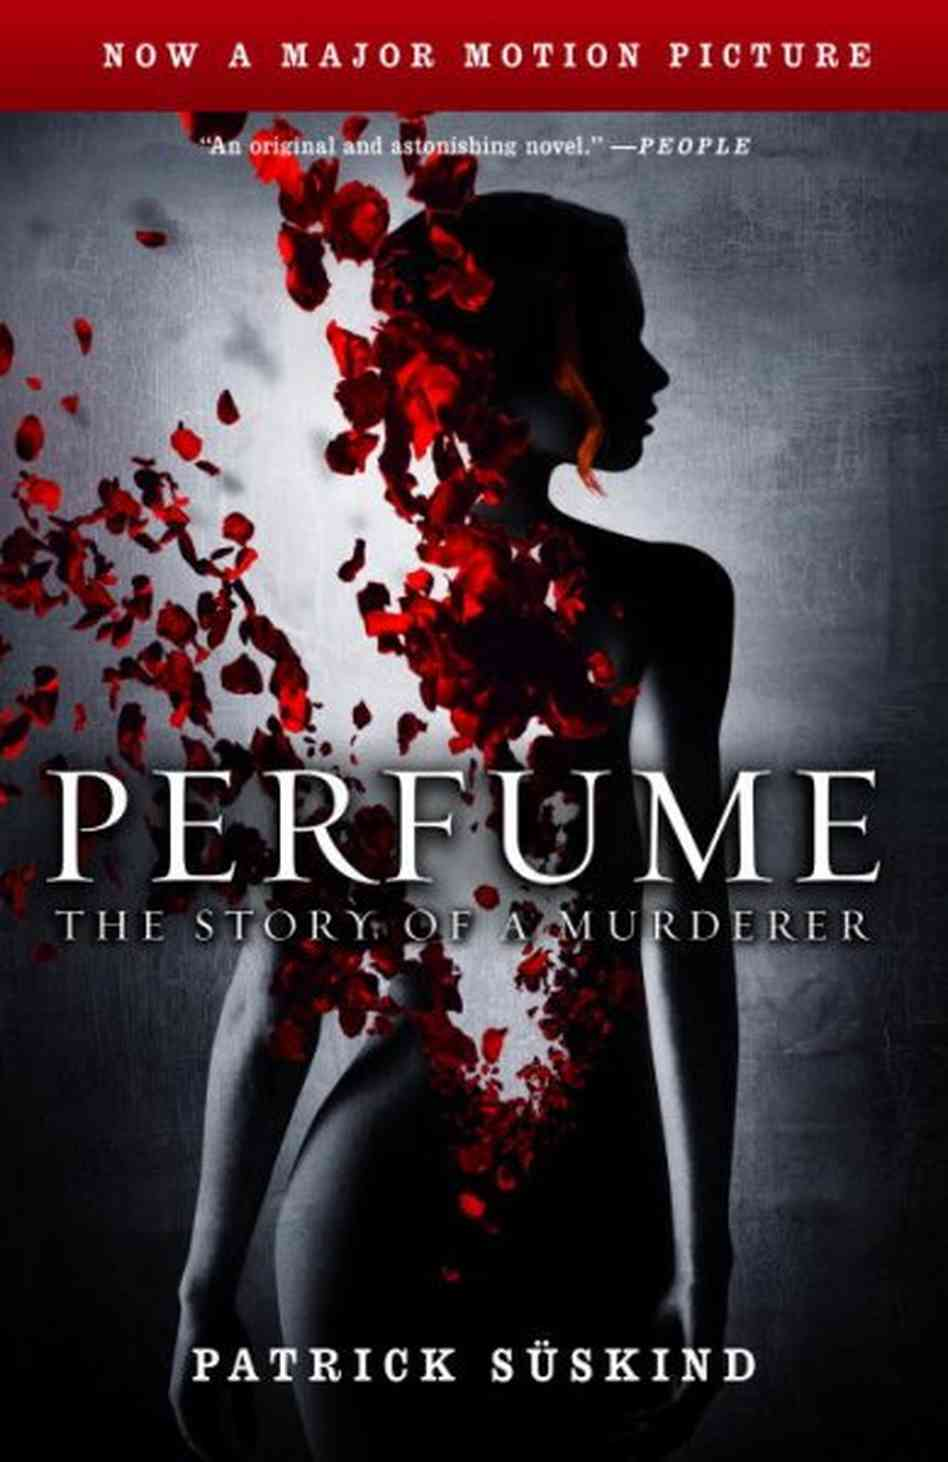 perfume - story of a murderer